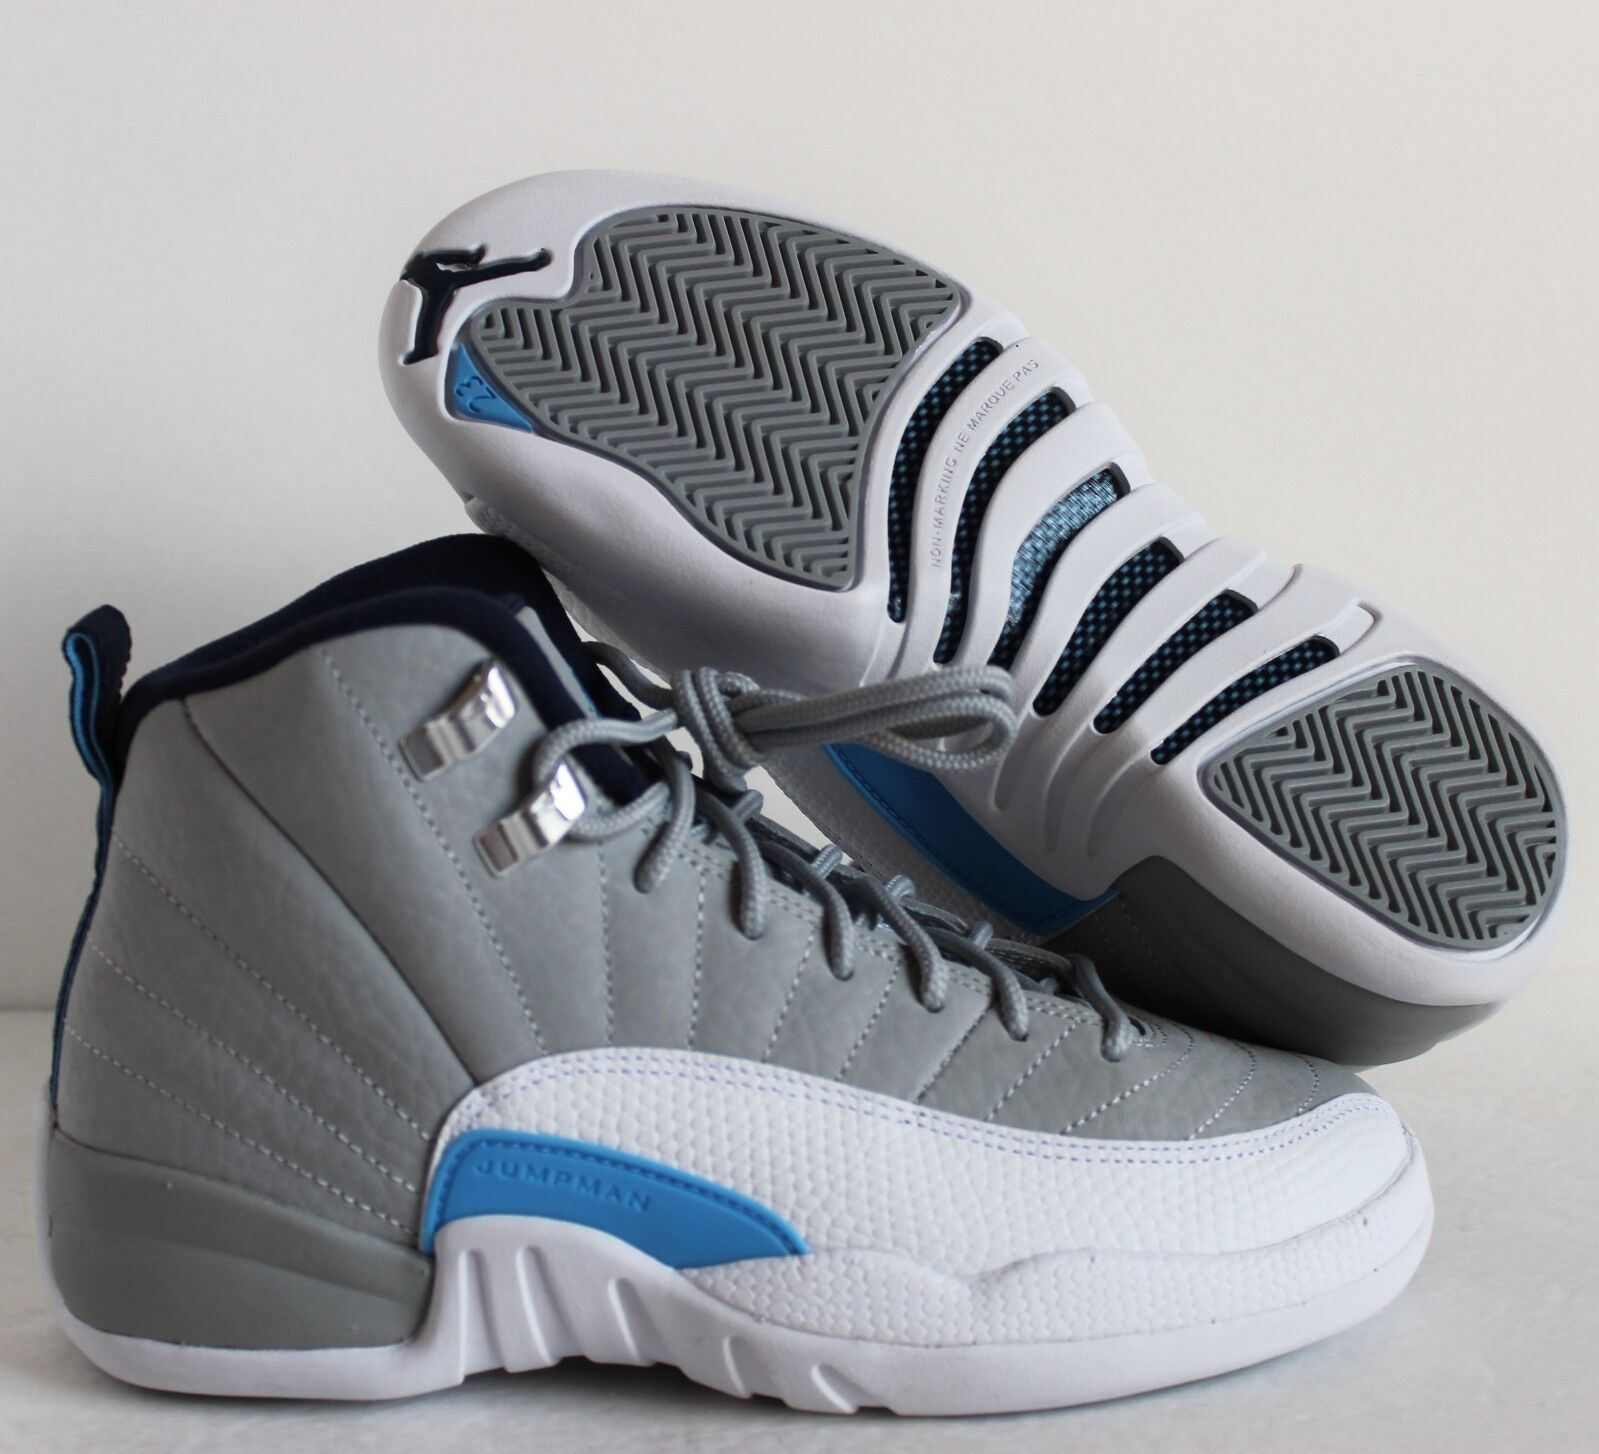 NIKE AIR JORDAN 12 RETRO BG WOLF GREY-UNI blueE SZ 6.5Y  WOMENS SZ 8 [153265-007]